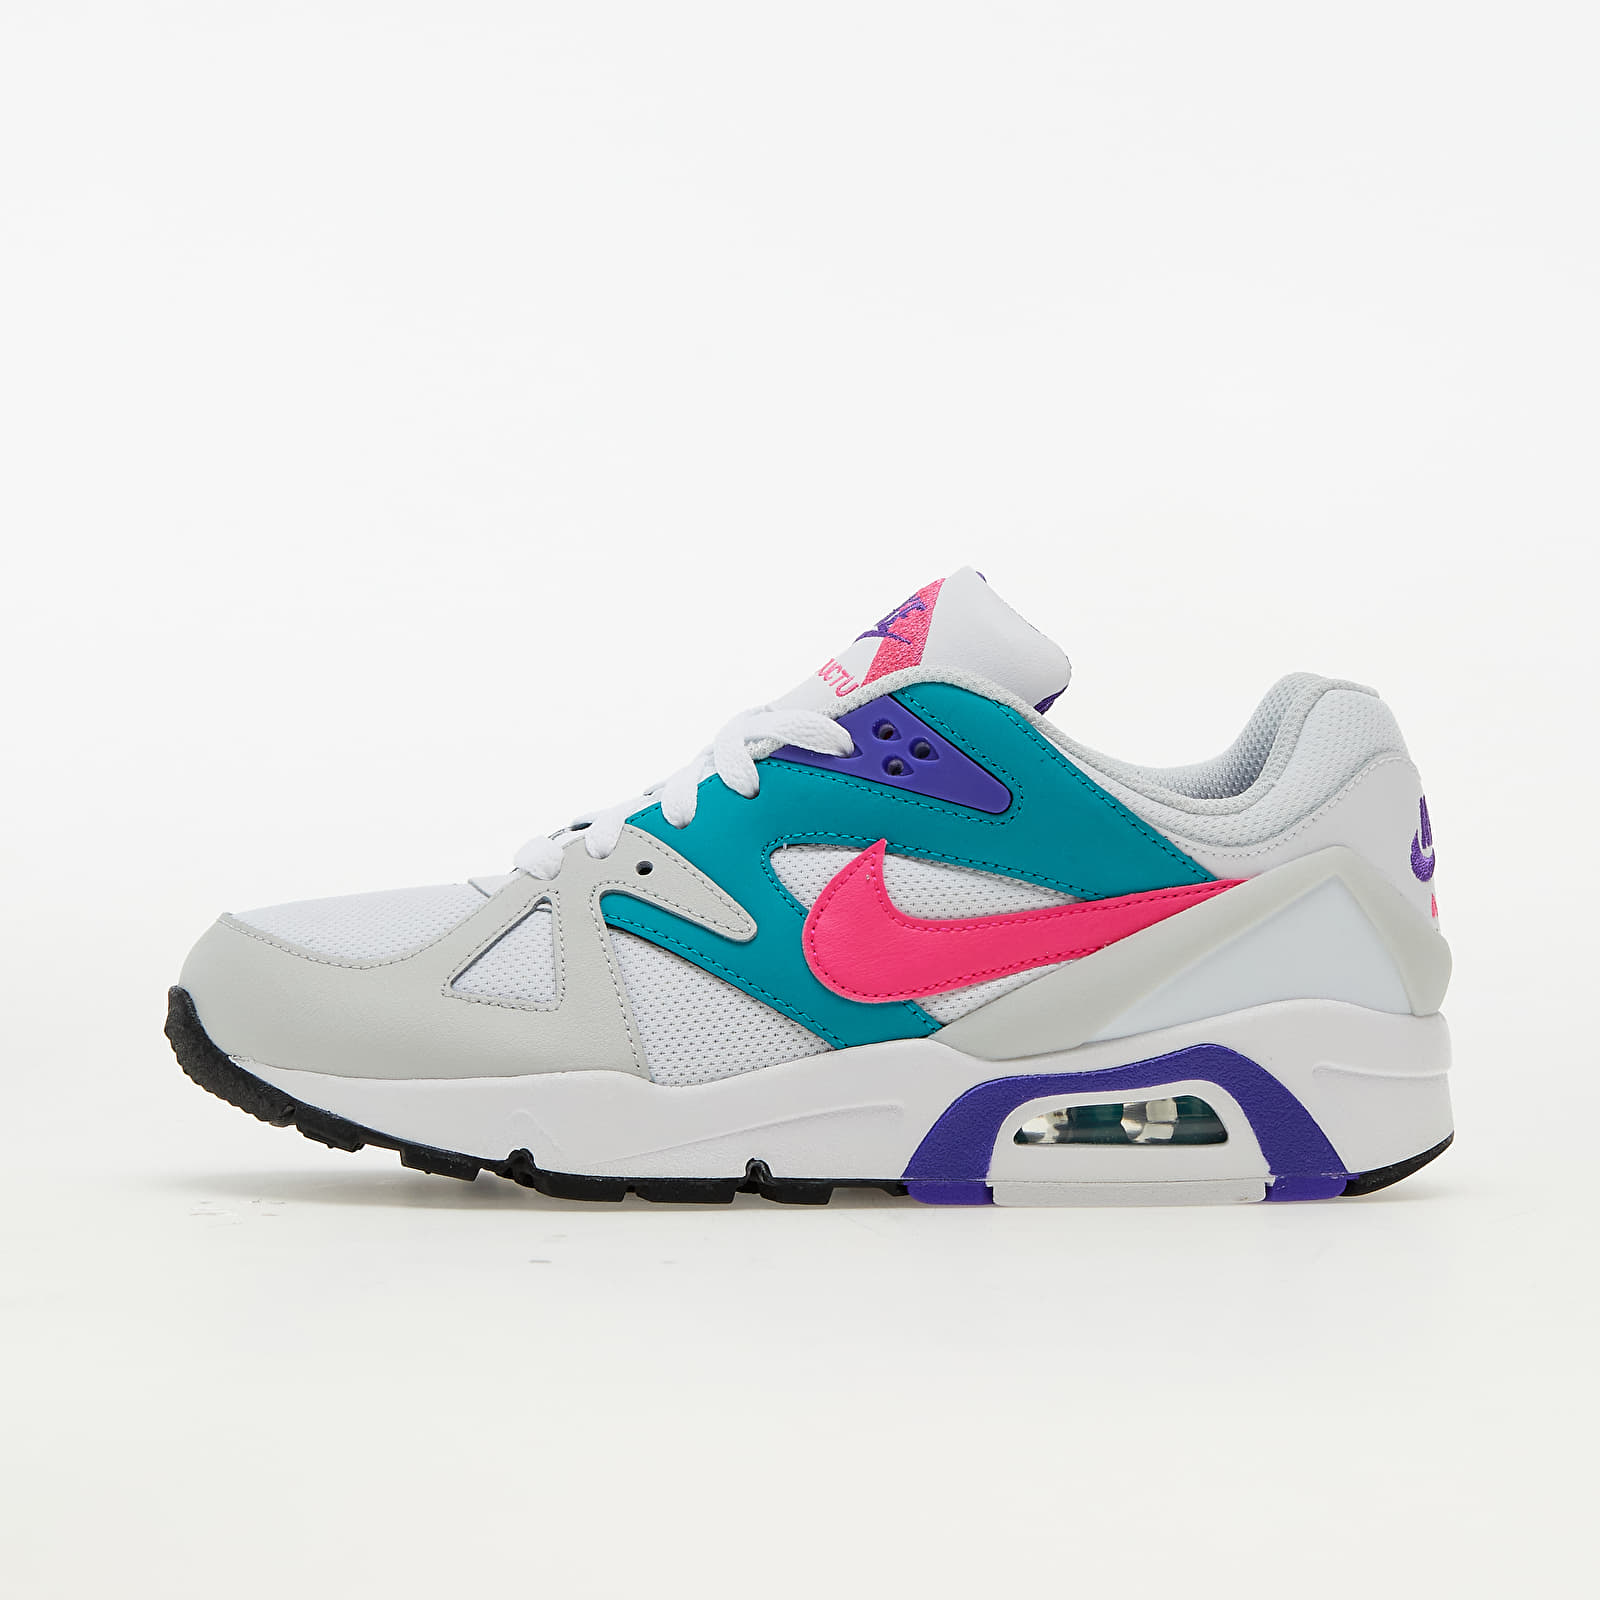 Nike W Air Structure White/ Hyper Pink-Turbo Green-Photon Dust EUR 38.5